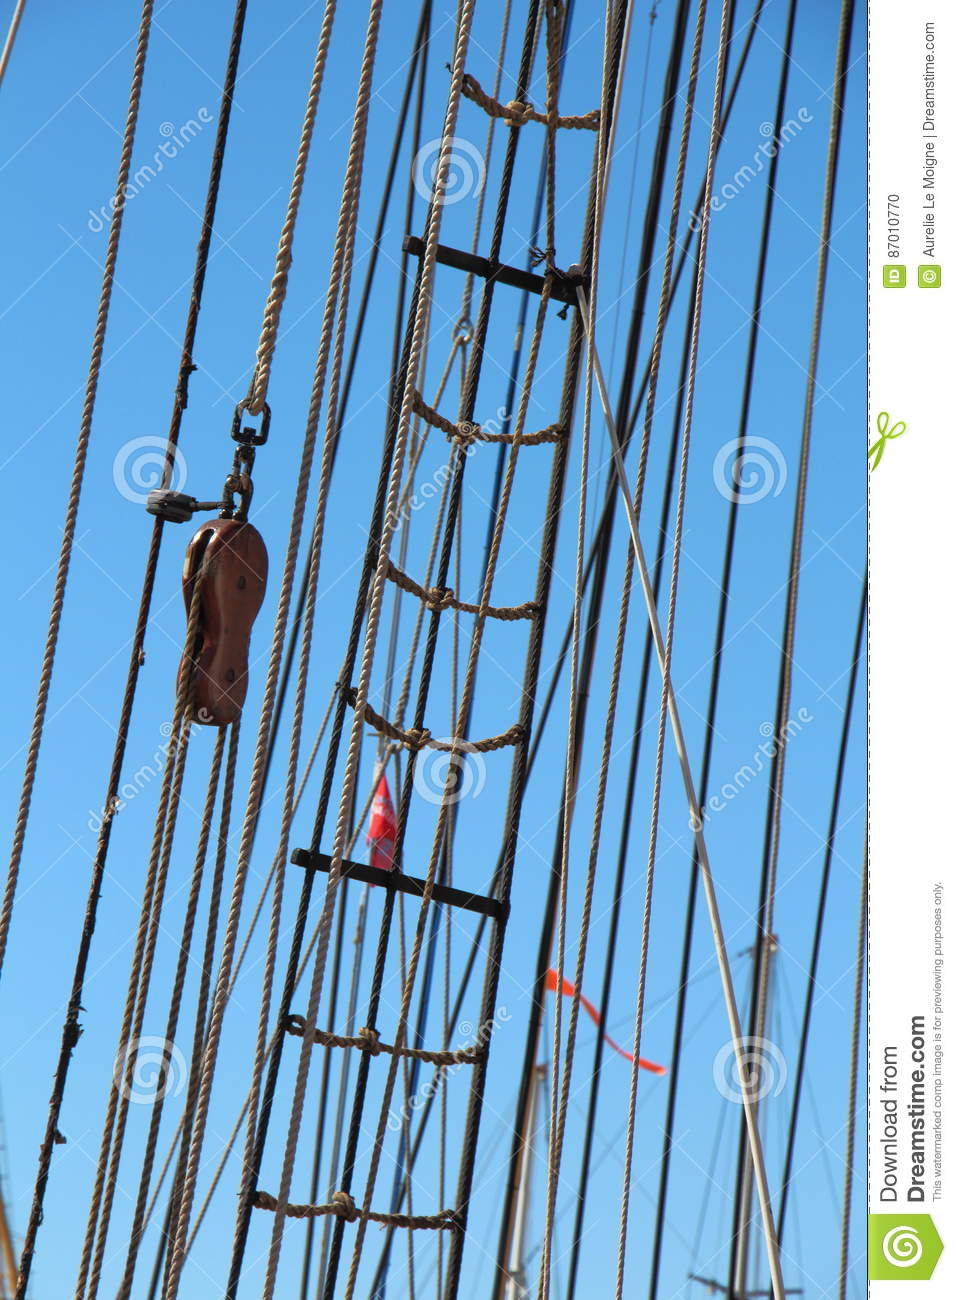 Shroud, Sail And Rope Ladder Of A Sailboat Stock Photo - Image of ...